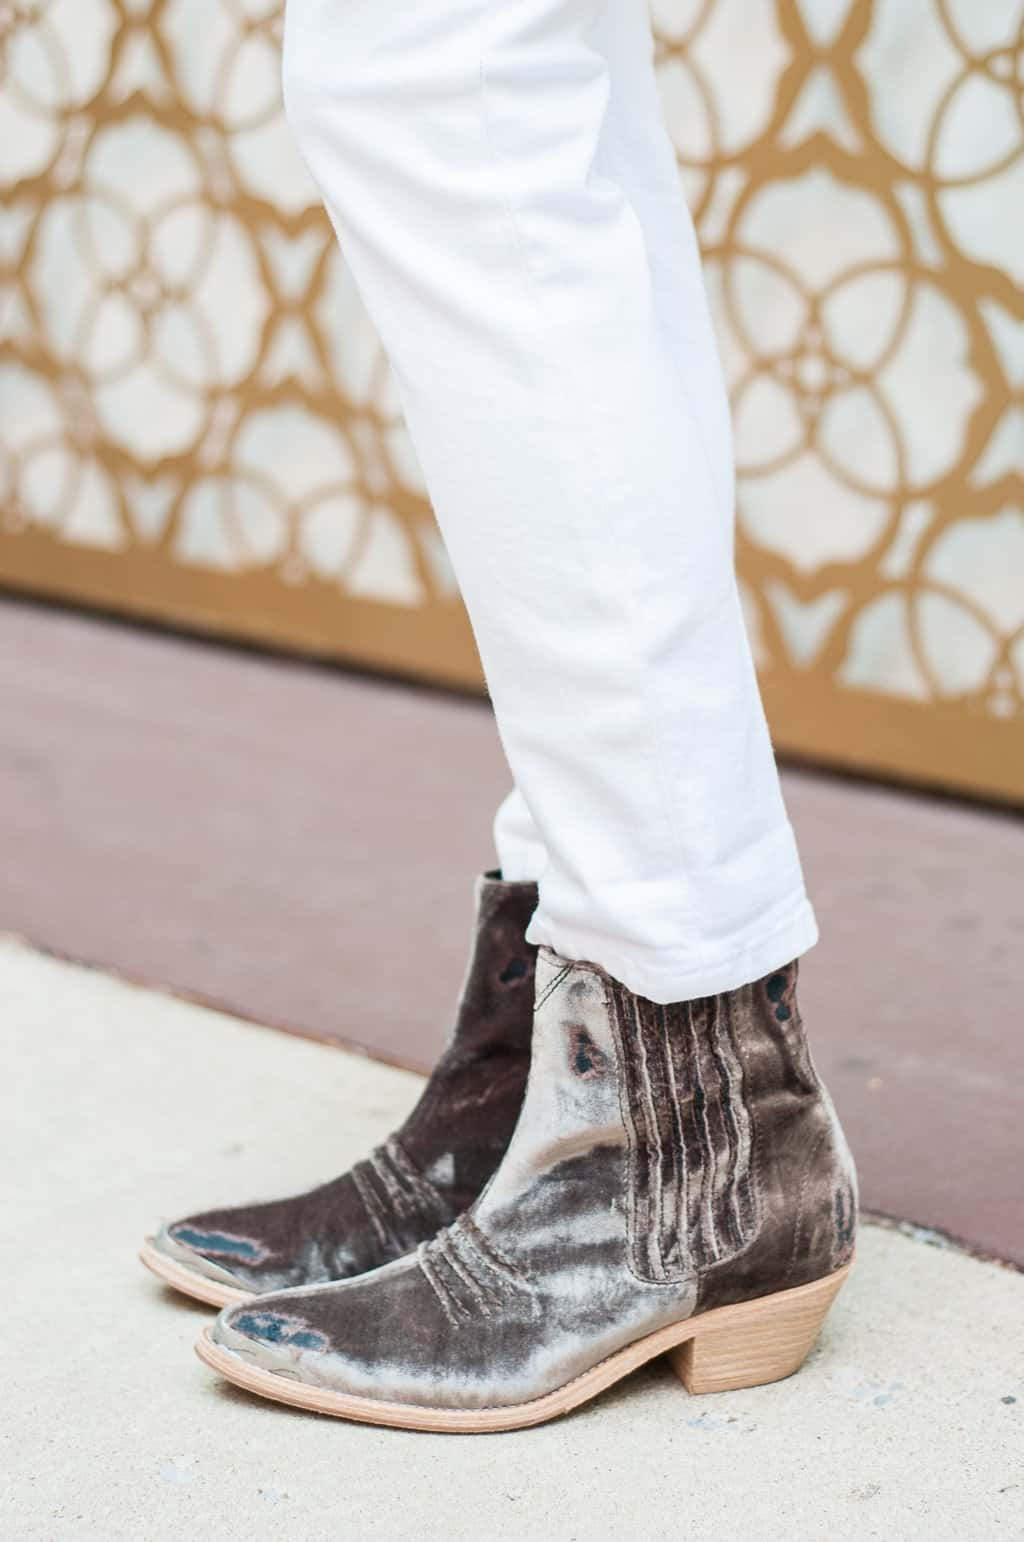 The New Shoe You Need Now: An Ankle Boot Like This